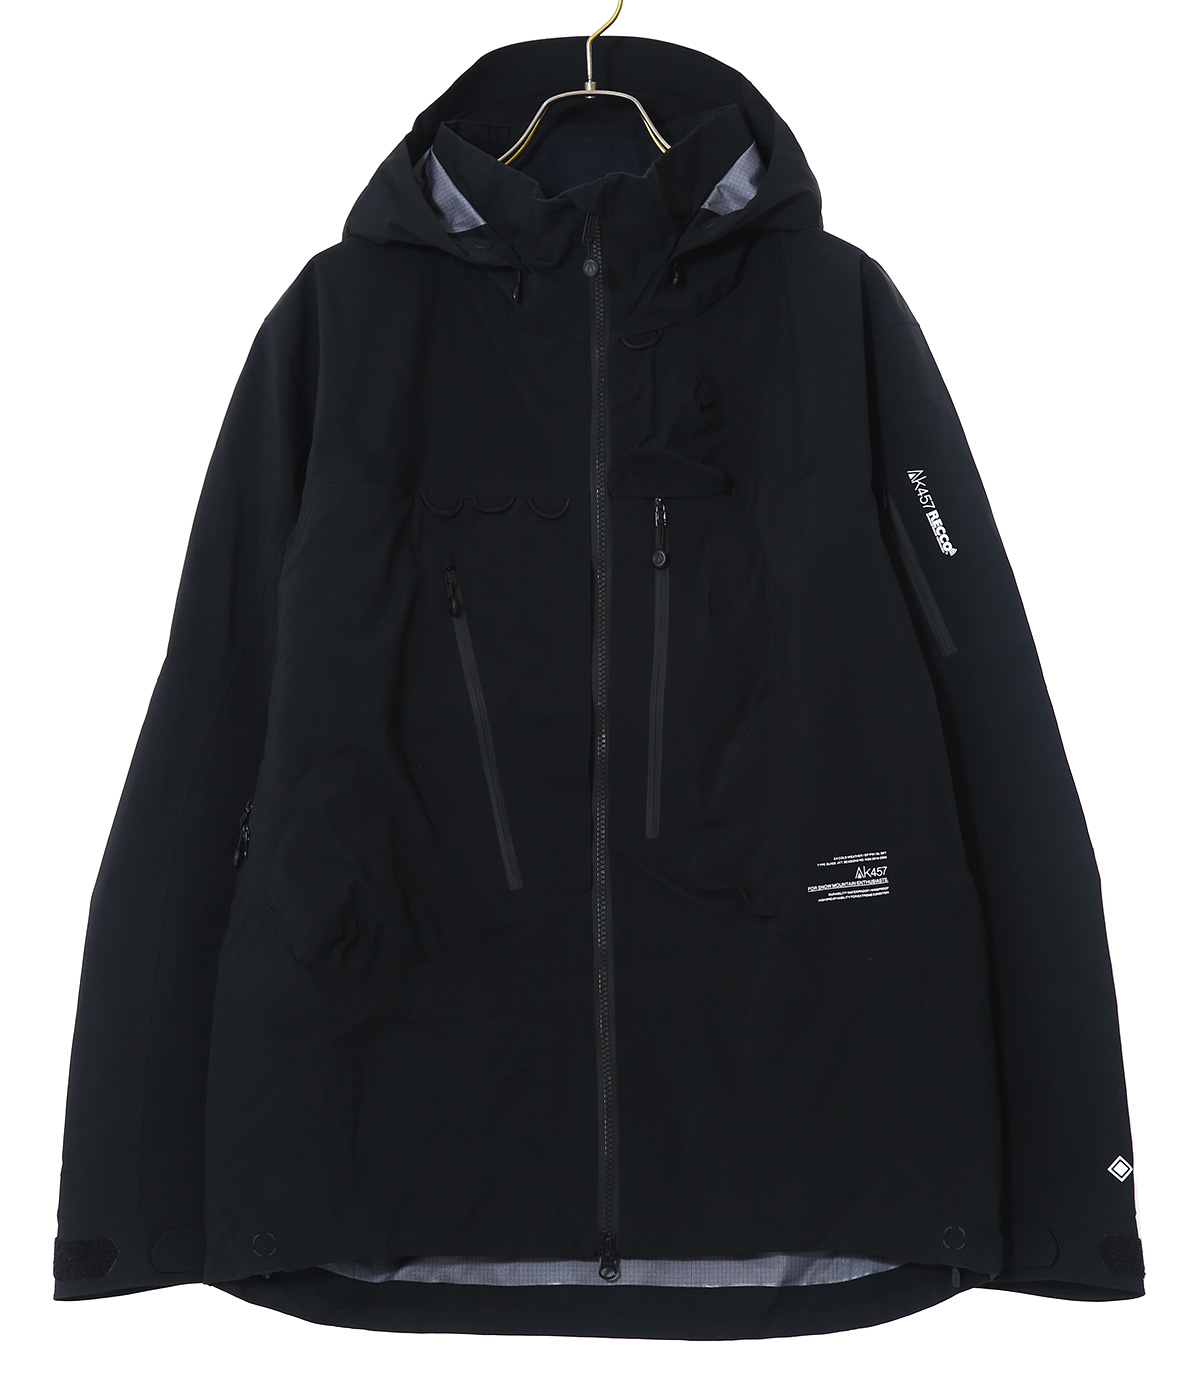 AK457 GUIDE JACKET